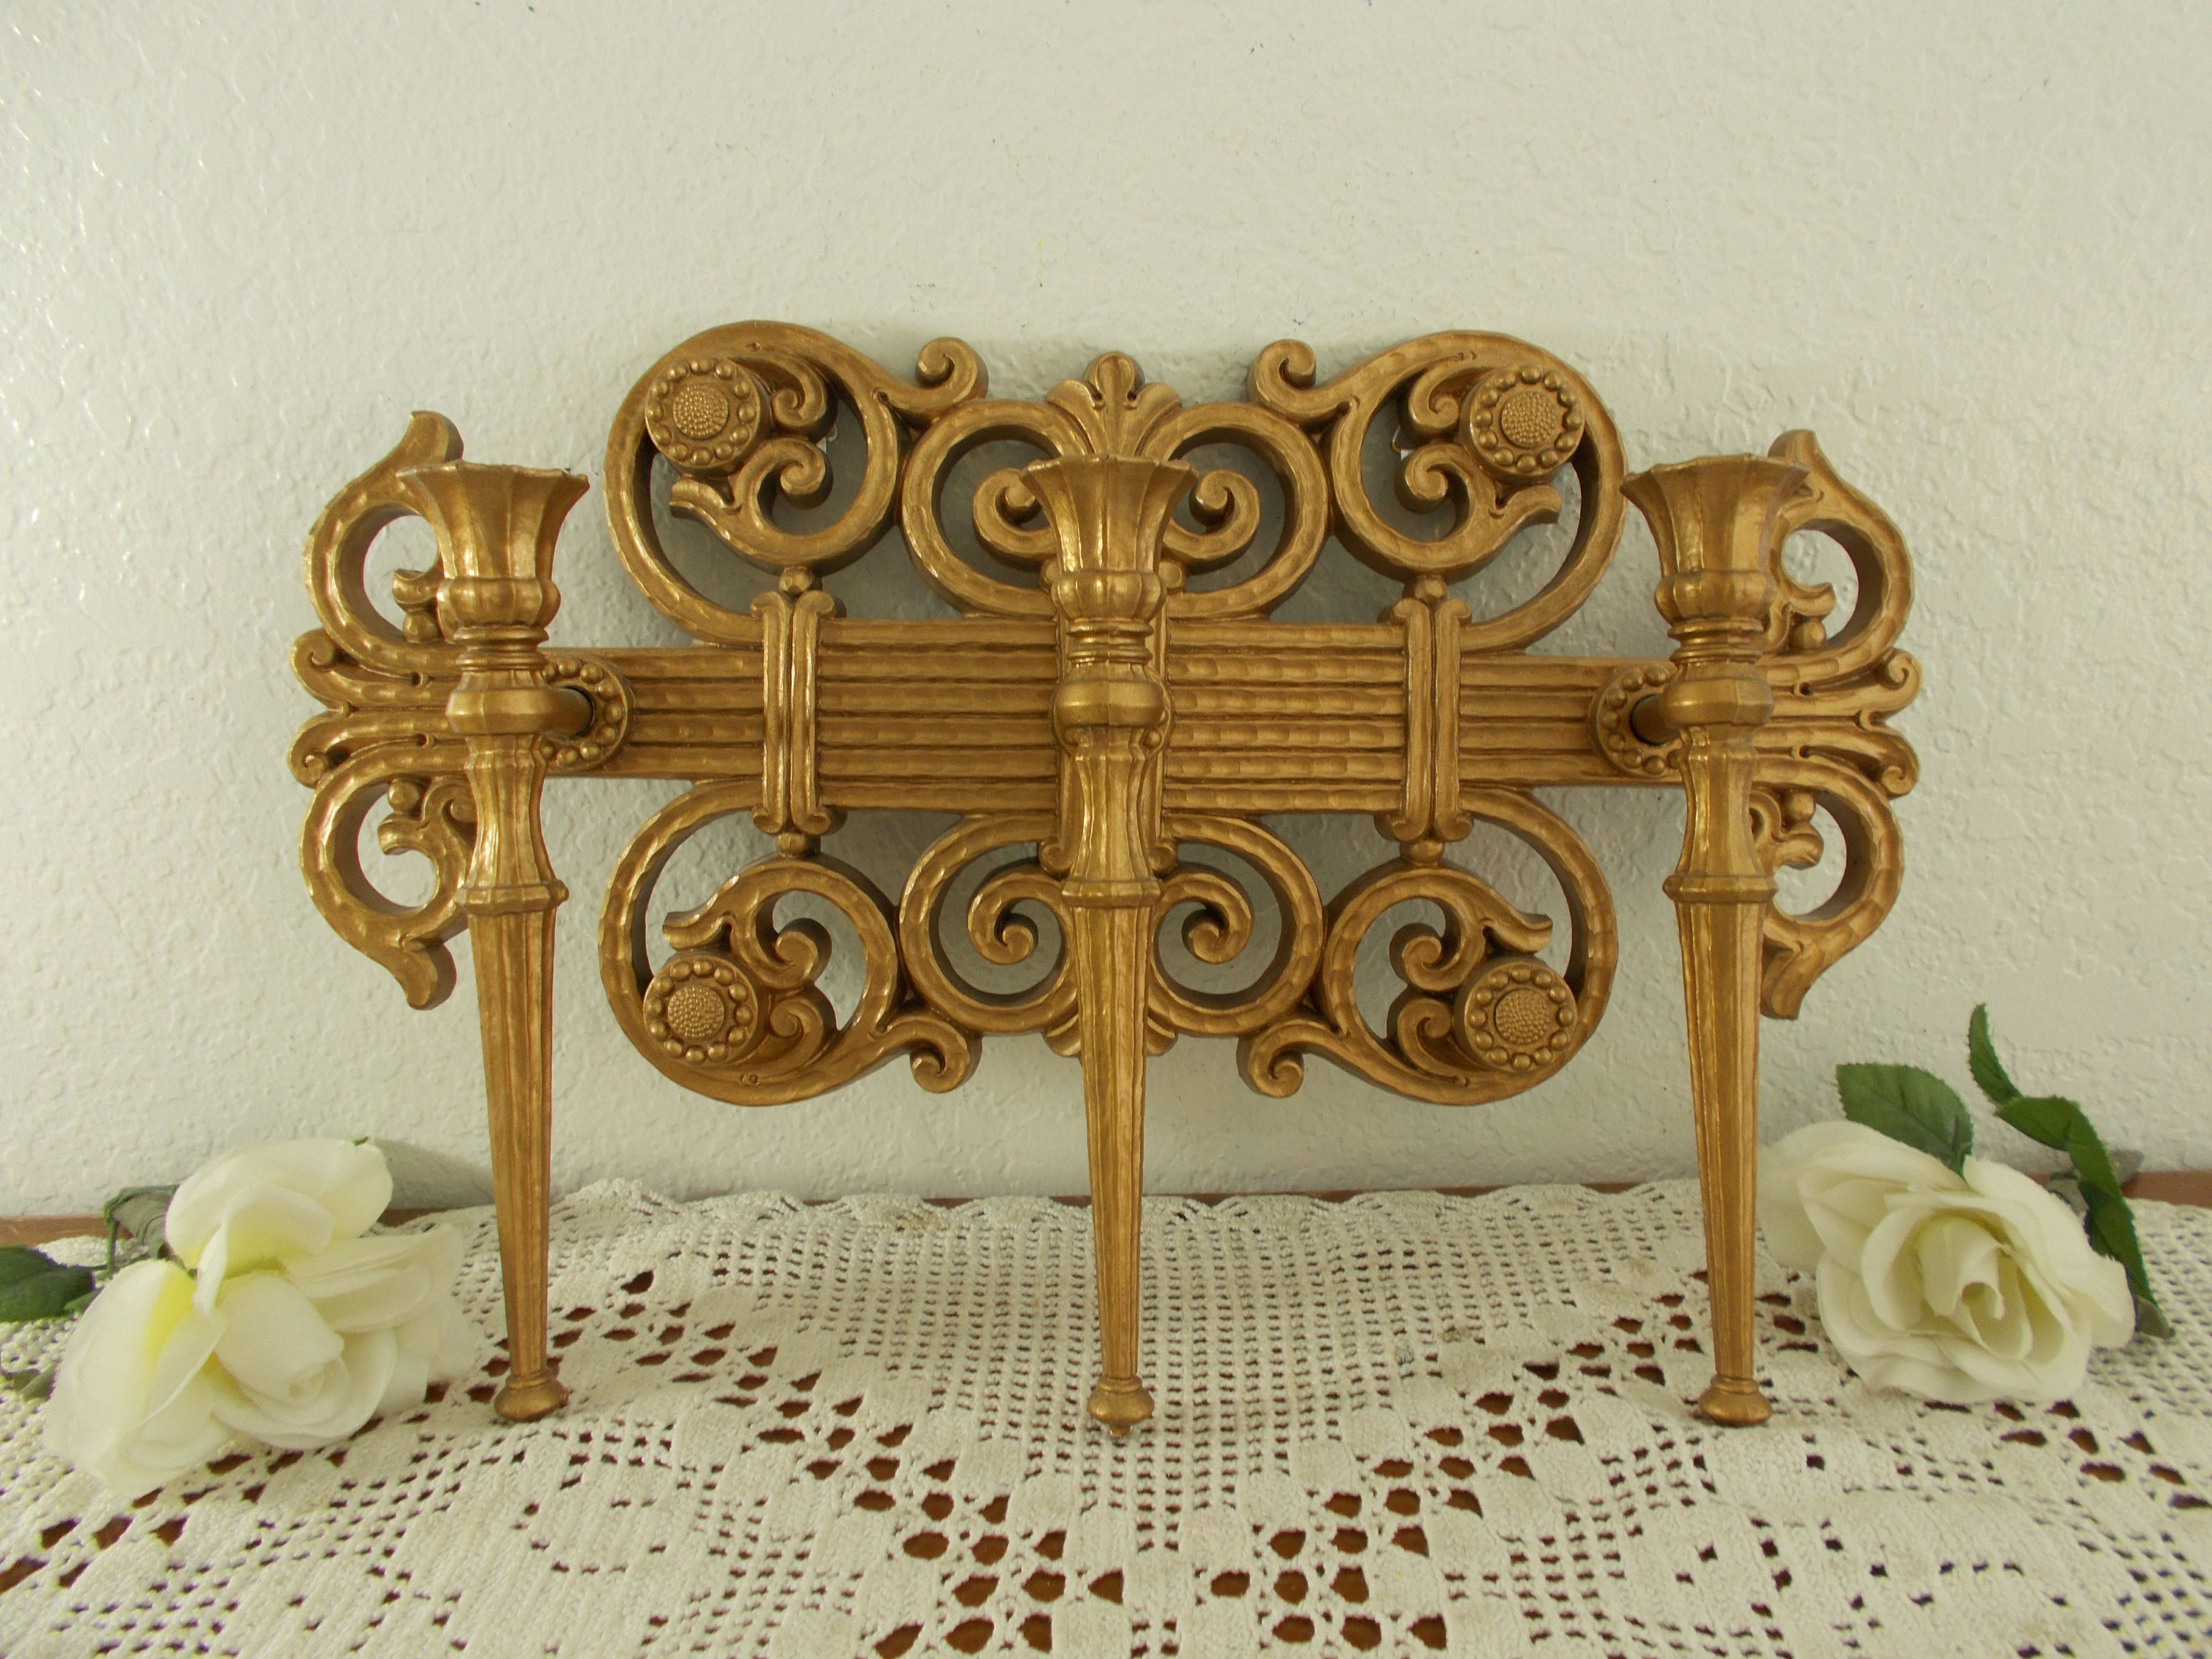 Vintage Gold Taper Candelabra Ornate Scroll Wall Decoration Mid Century  Hollywood Regency French Country Farmhouse Retro Home Decor Wedding throughout Ornate Scroll Wall Decor (Image 27 of 30)